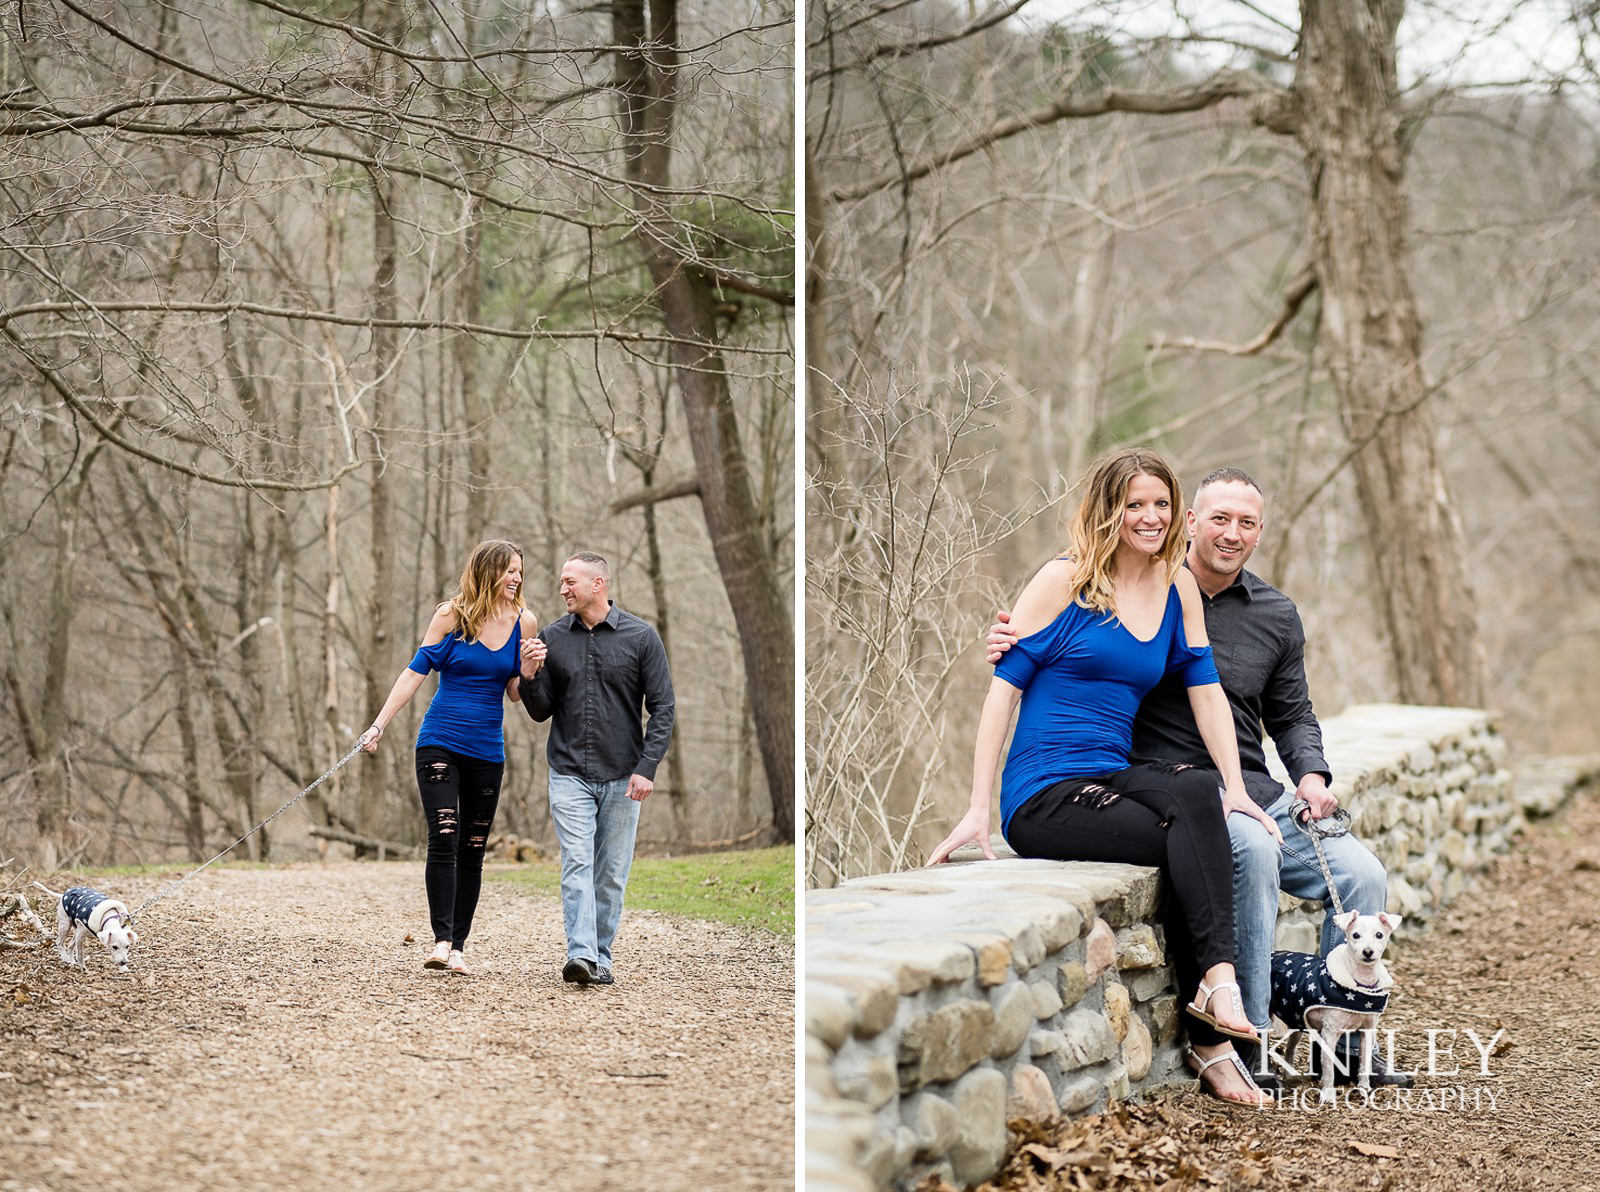 010 - Letchworth State Park engagement picture collage 2.jpg